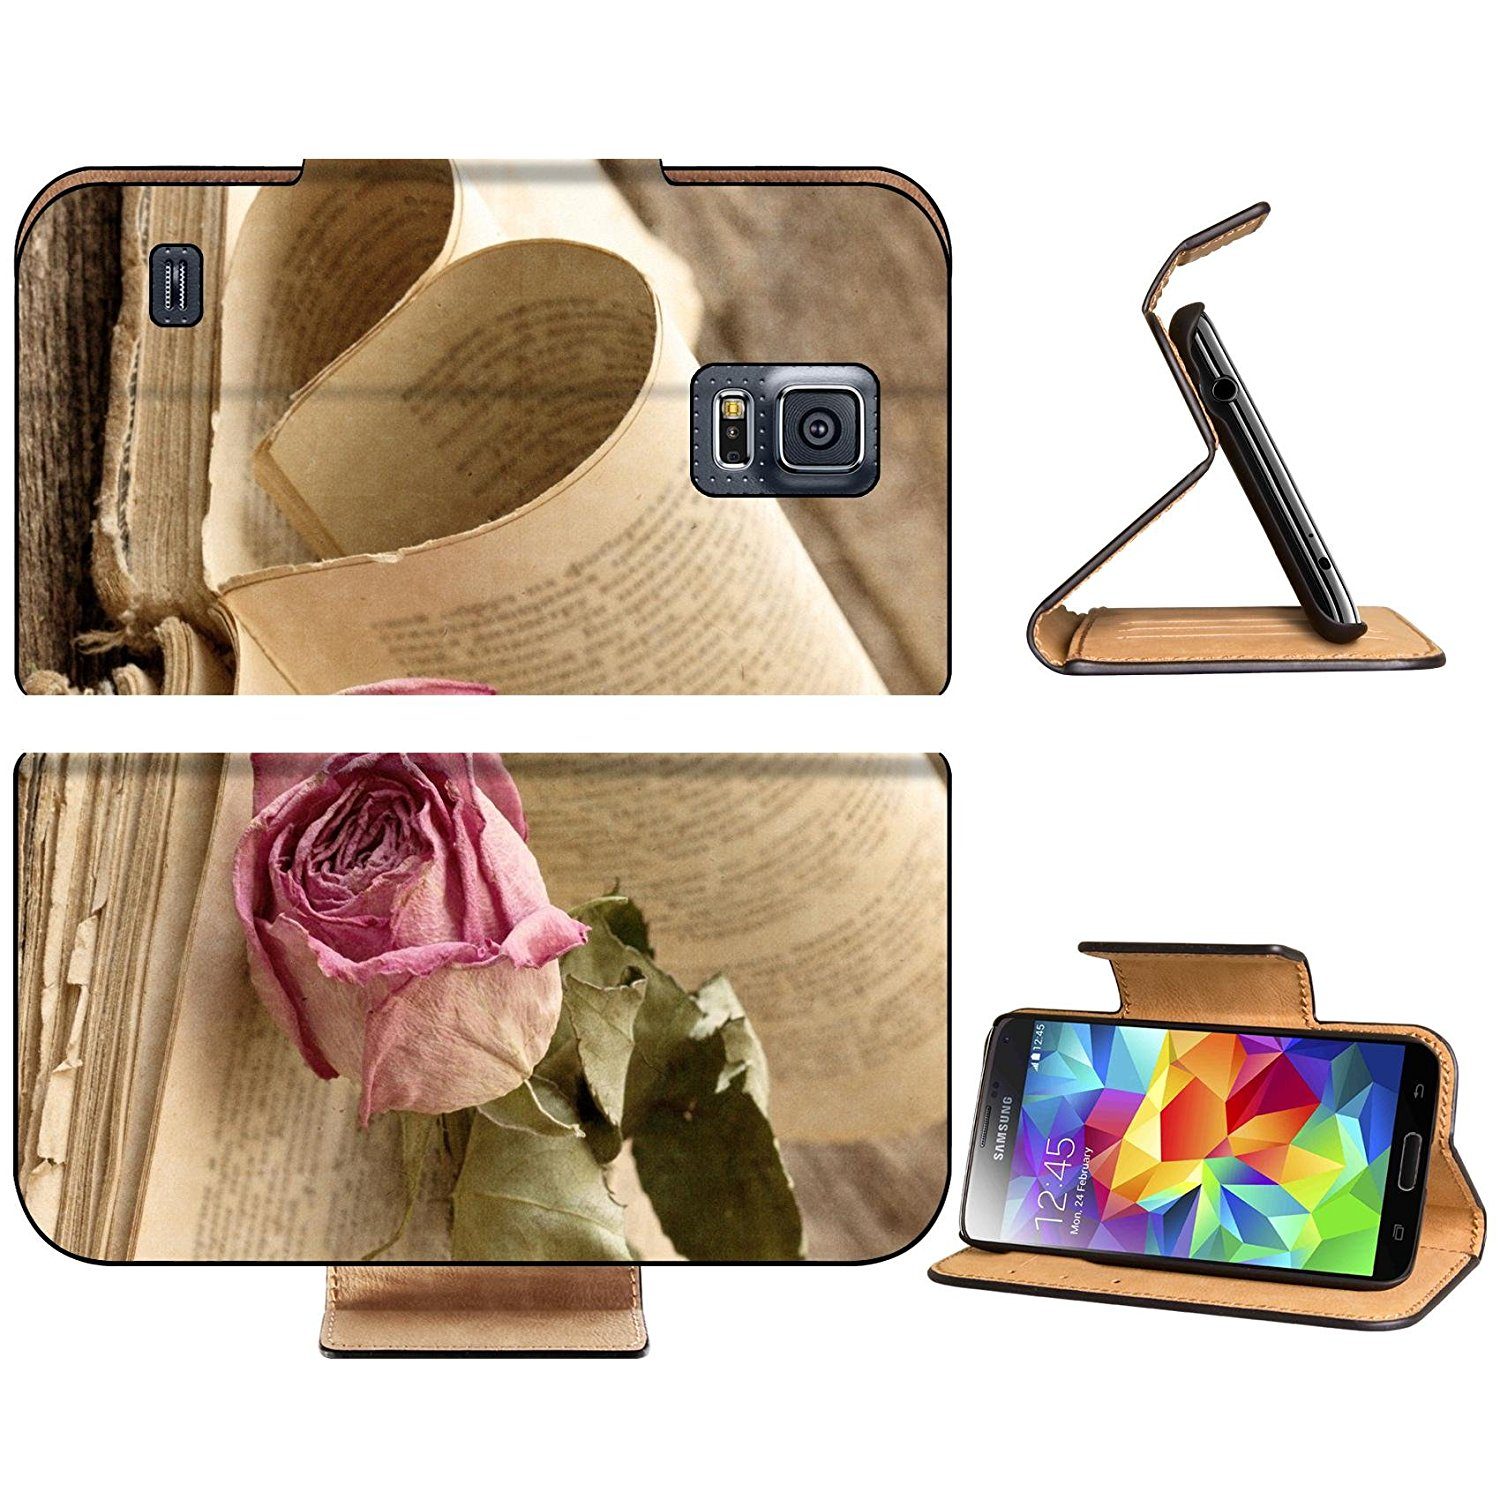 Liili Premium Samsung Galaxy S5 Flip Pu Leather Wallet Case Dry rose on an old book in a vintage style Photo 19668650 Simple Snap Carrying